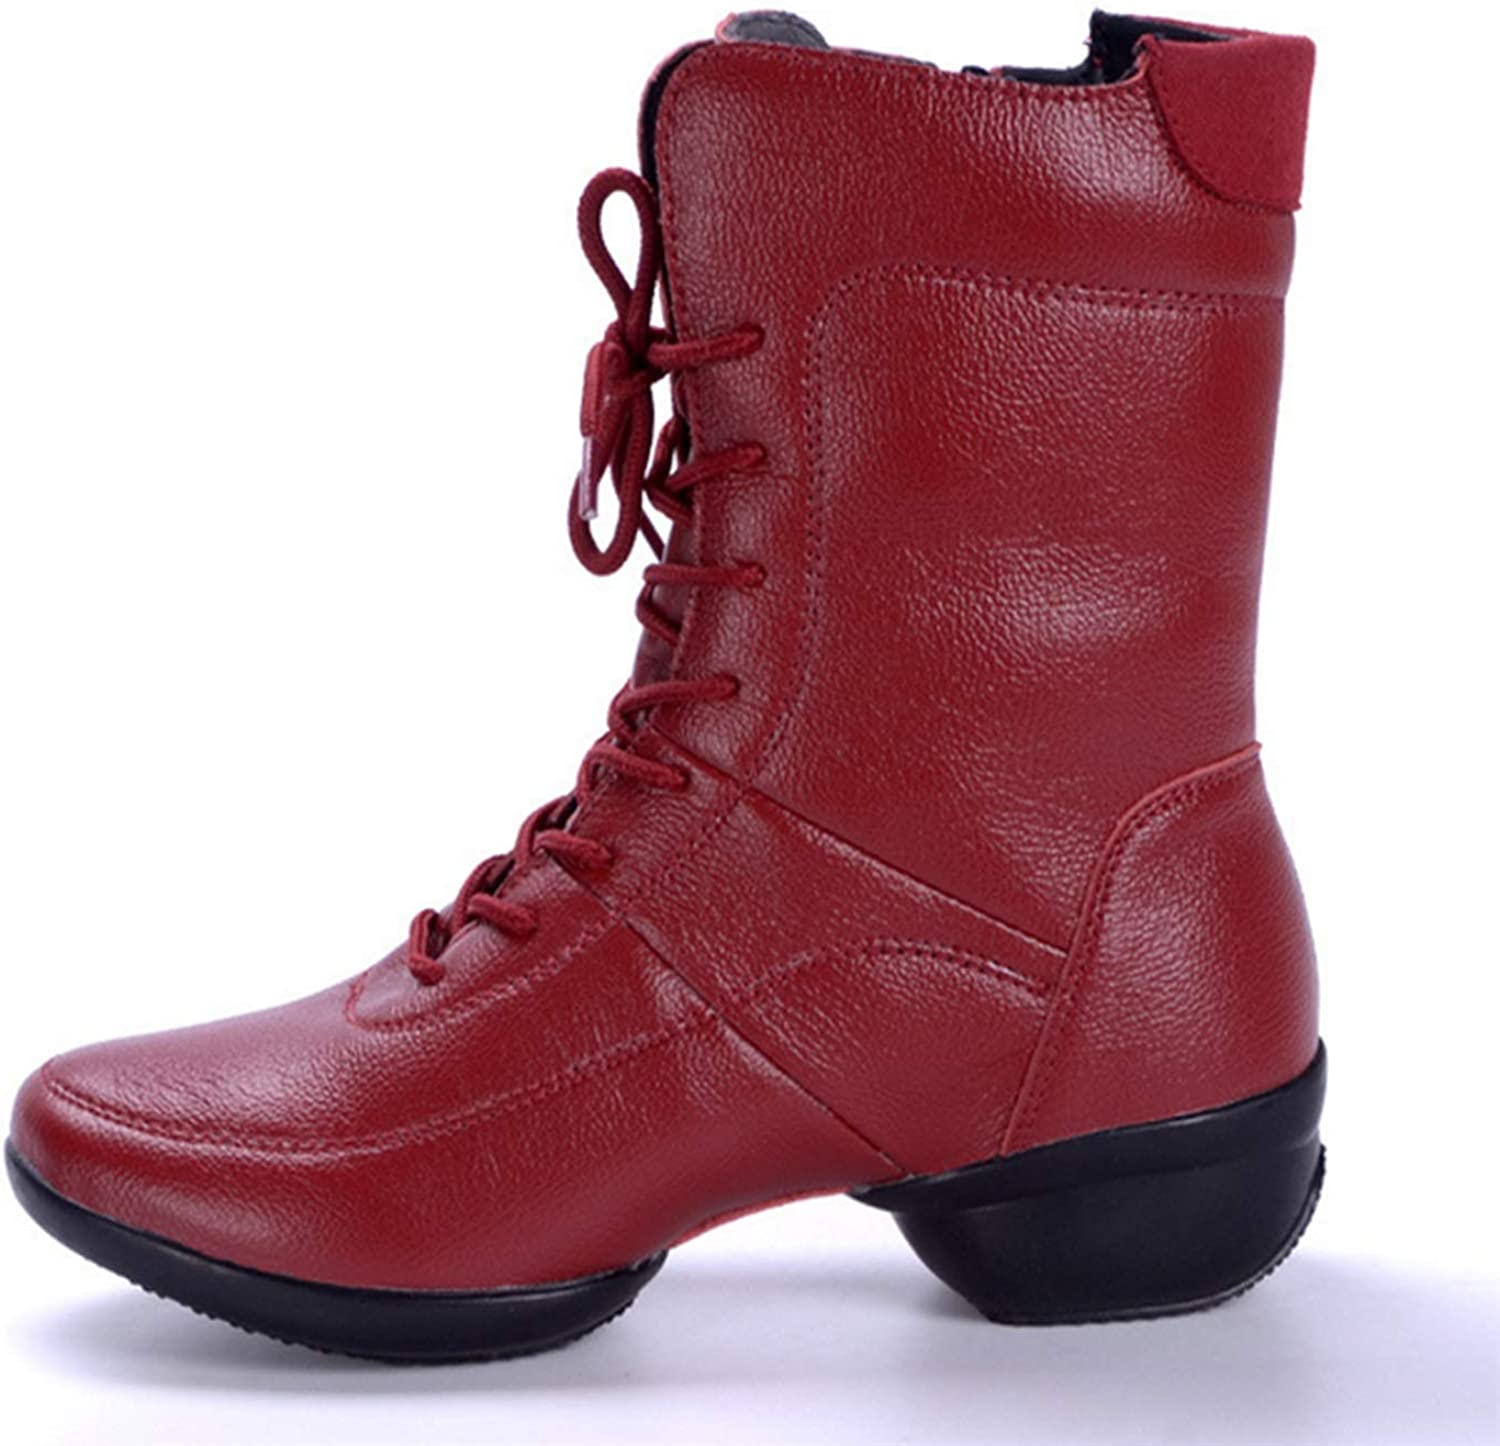 Dig dog bone Women's High Top Dance Boots with Fleece Lining Side Zipper Genuine Leather Soft Outsoles